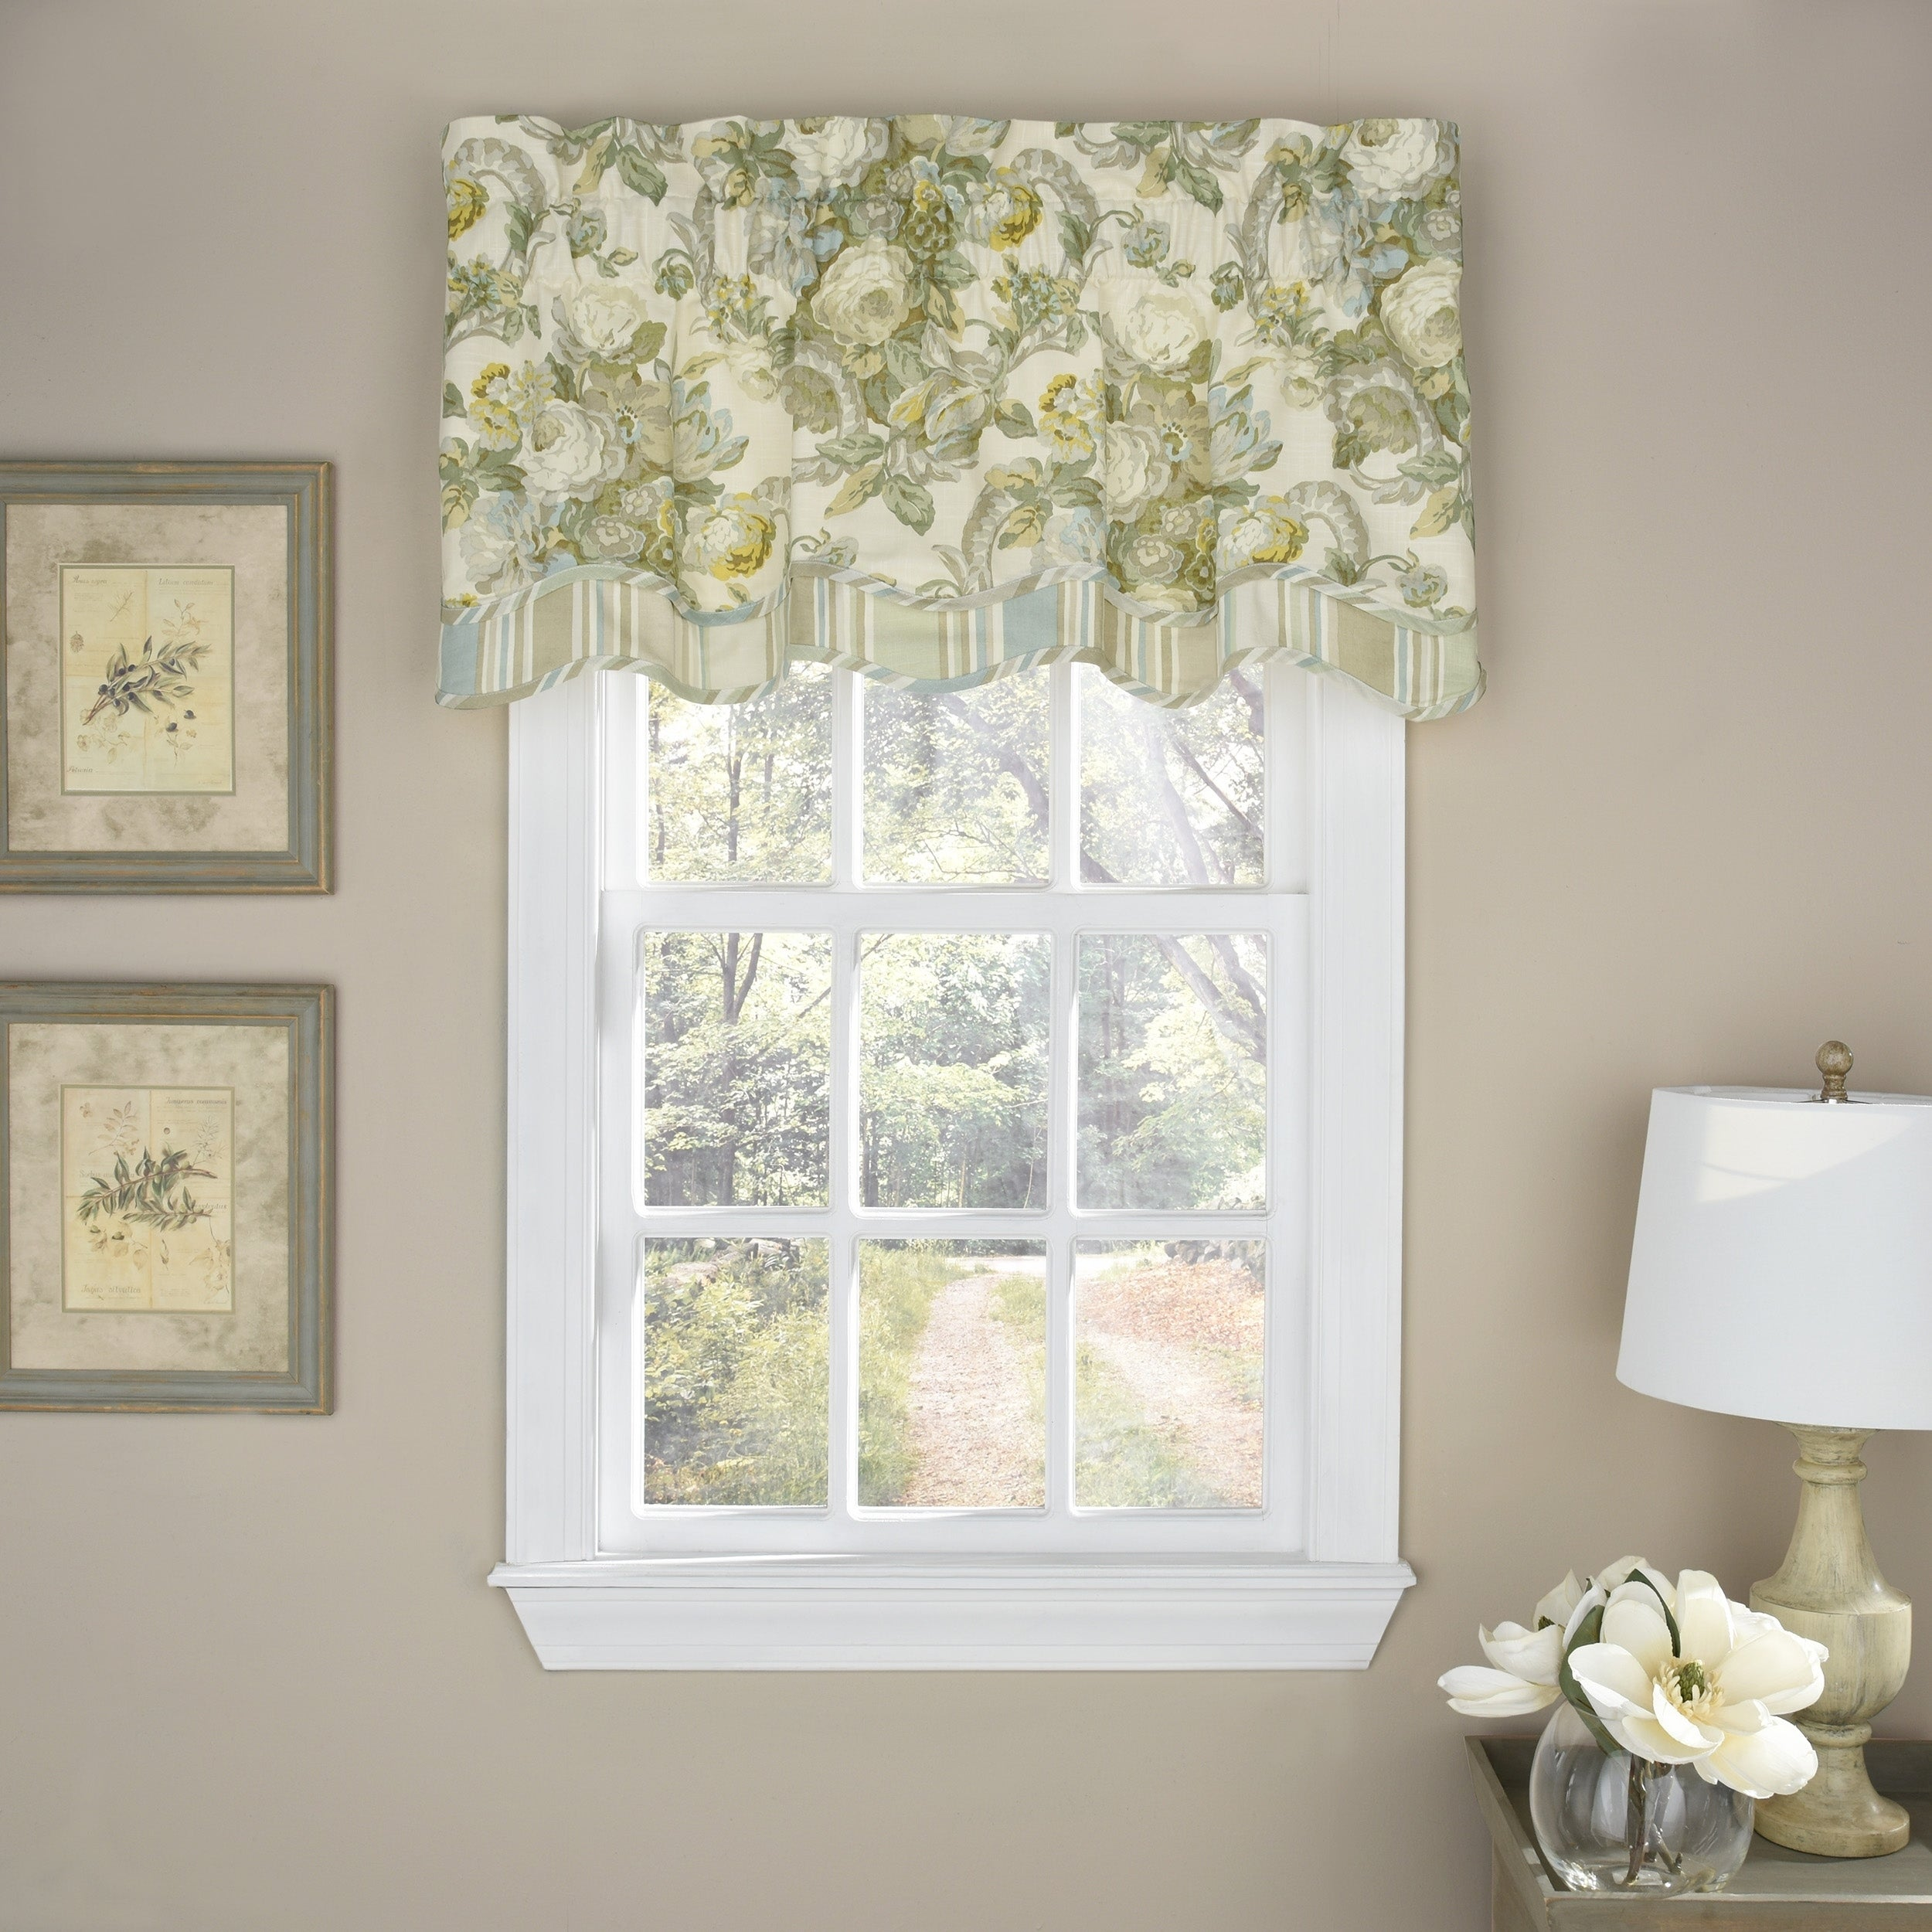 ideas waverly decor home interior kitchen and epic curtains valances inspiration valance of arrangement